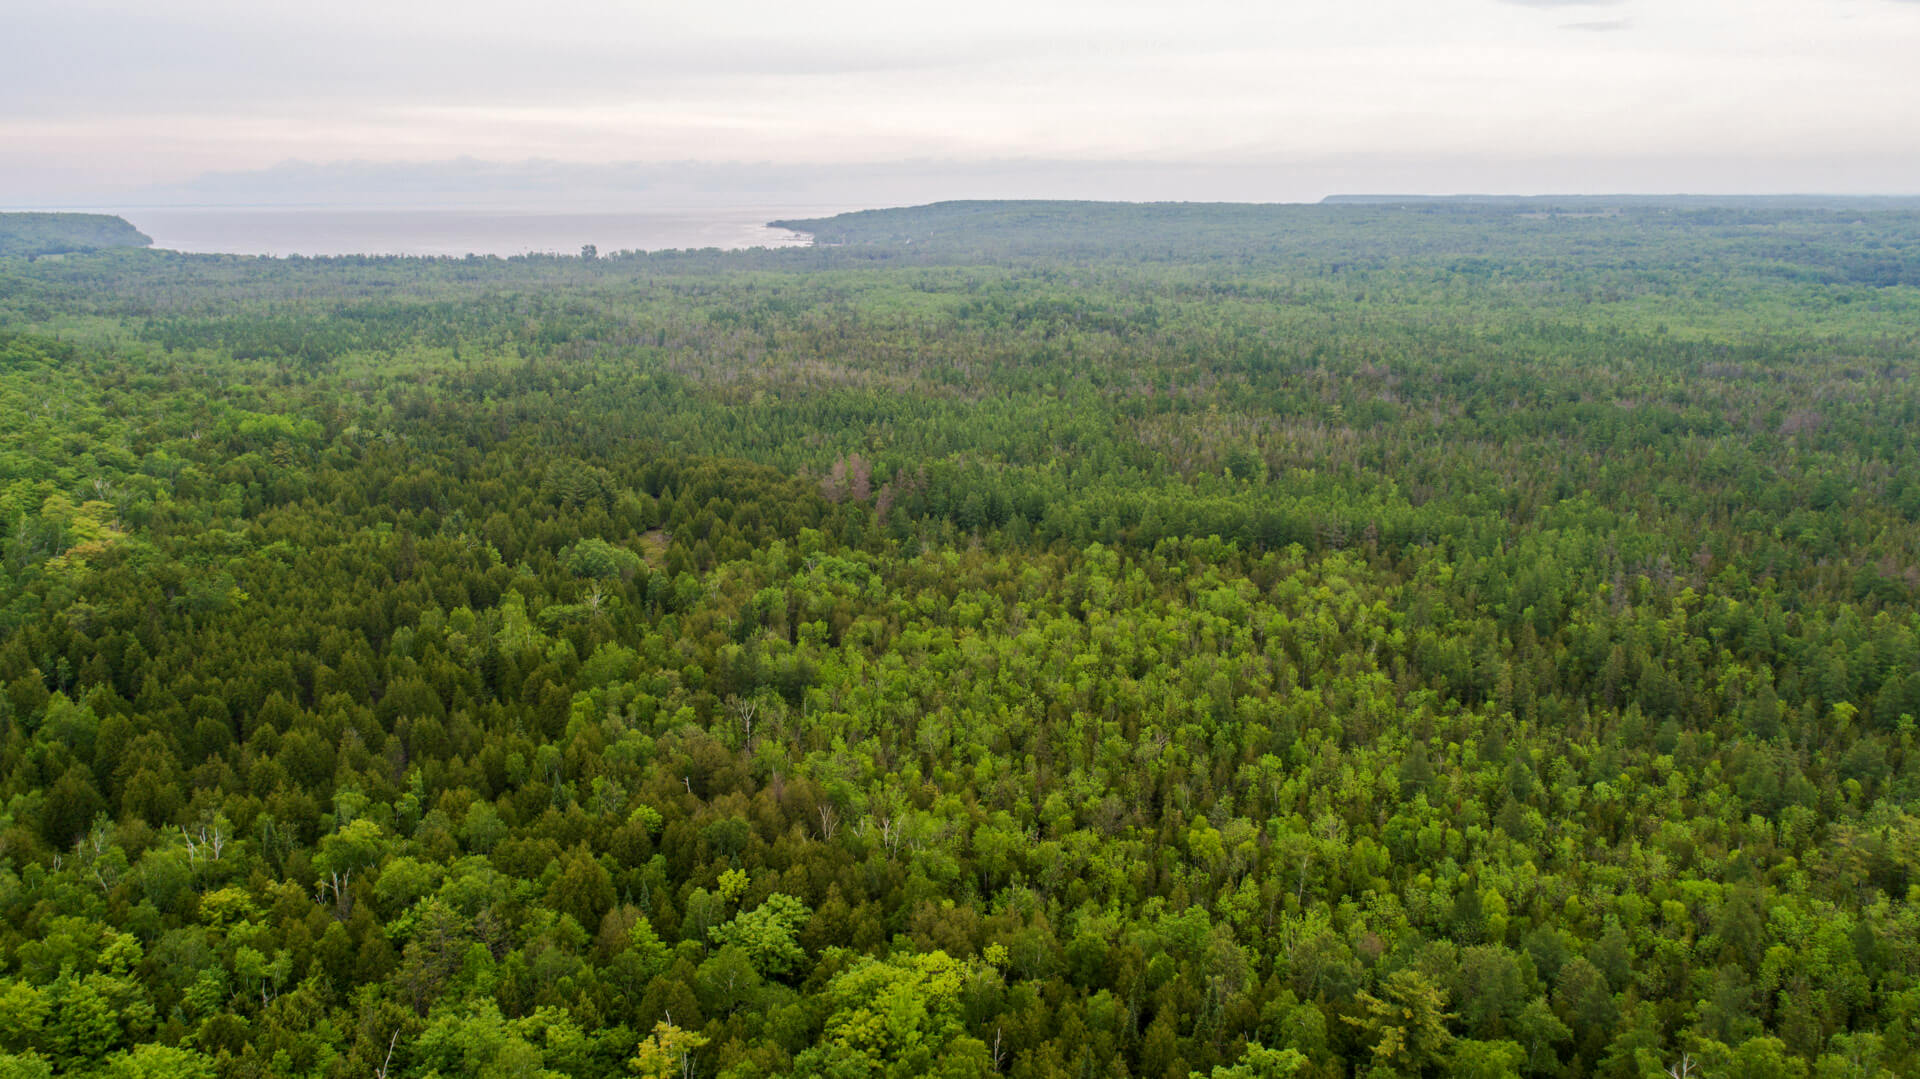 An aerial view of the Gibraltar Ephraim Swamp, whose purchase was made possible by Wisconsin's Knowles-Nelson Stewardship Program